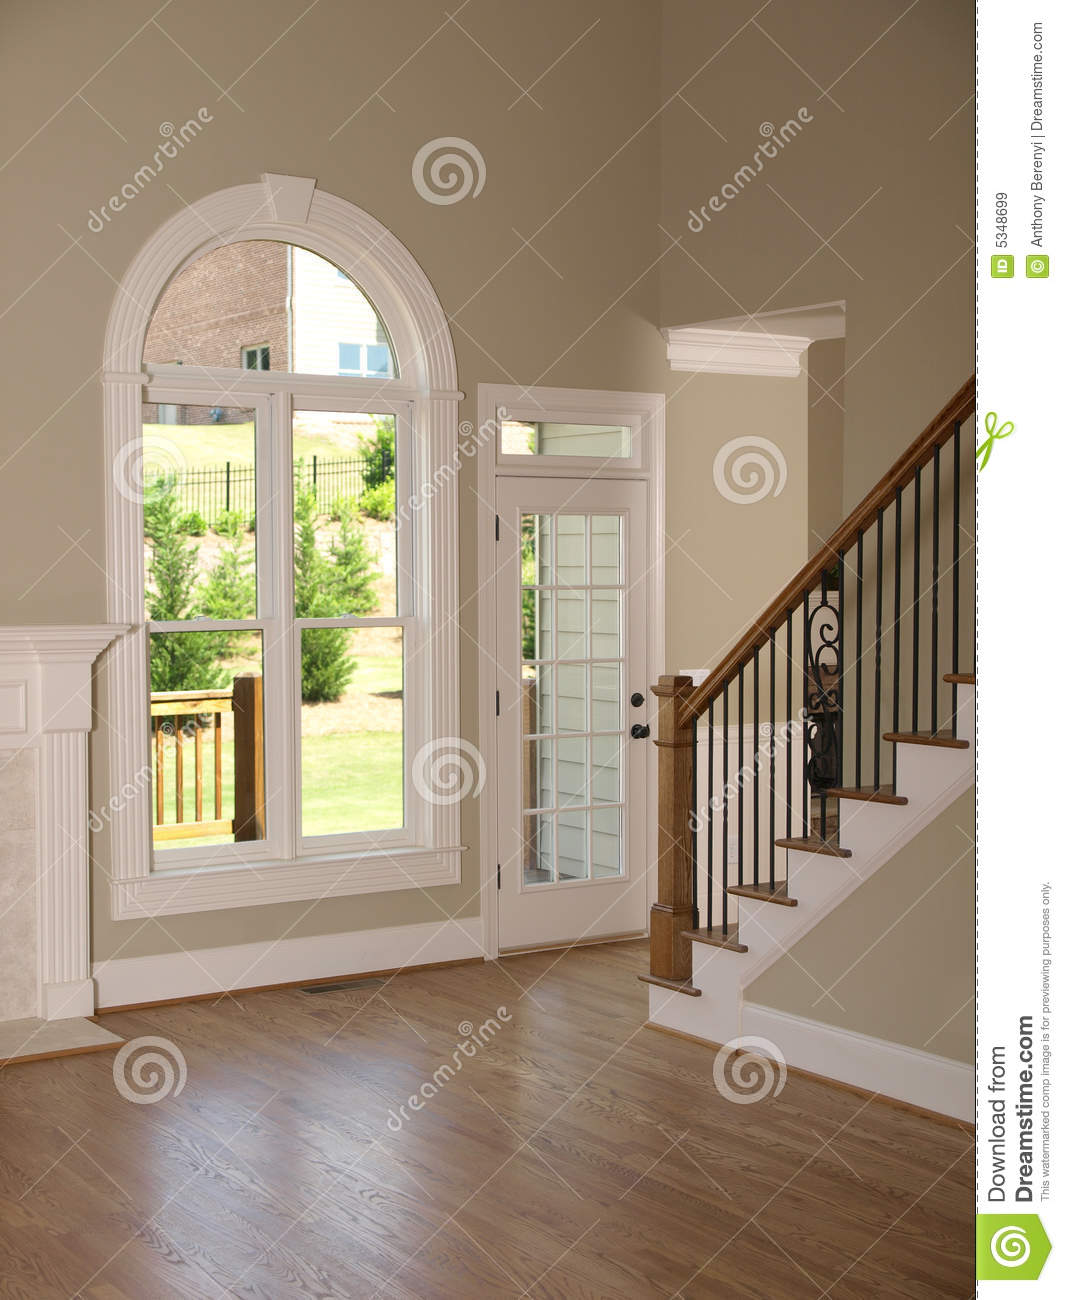 luxury model home living room staircase stock image image of living inside 5348699. Black Bedroom Furniture Sets. Home Design Ideas